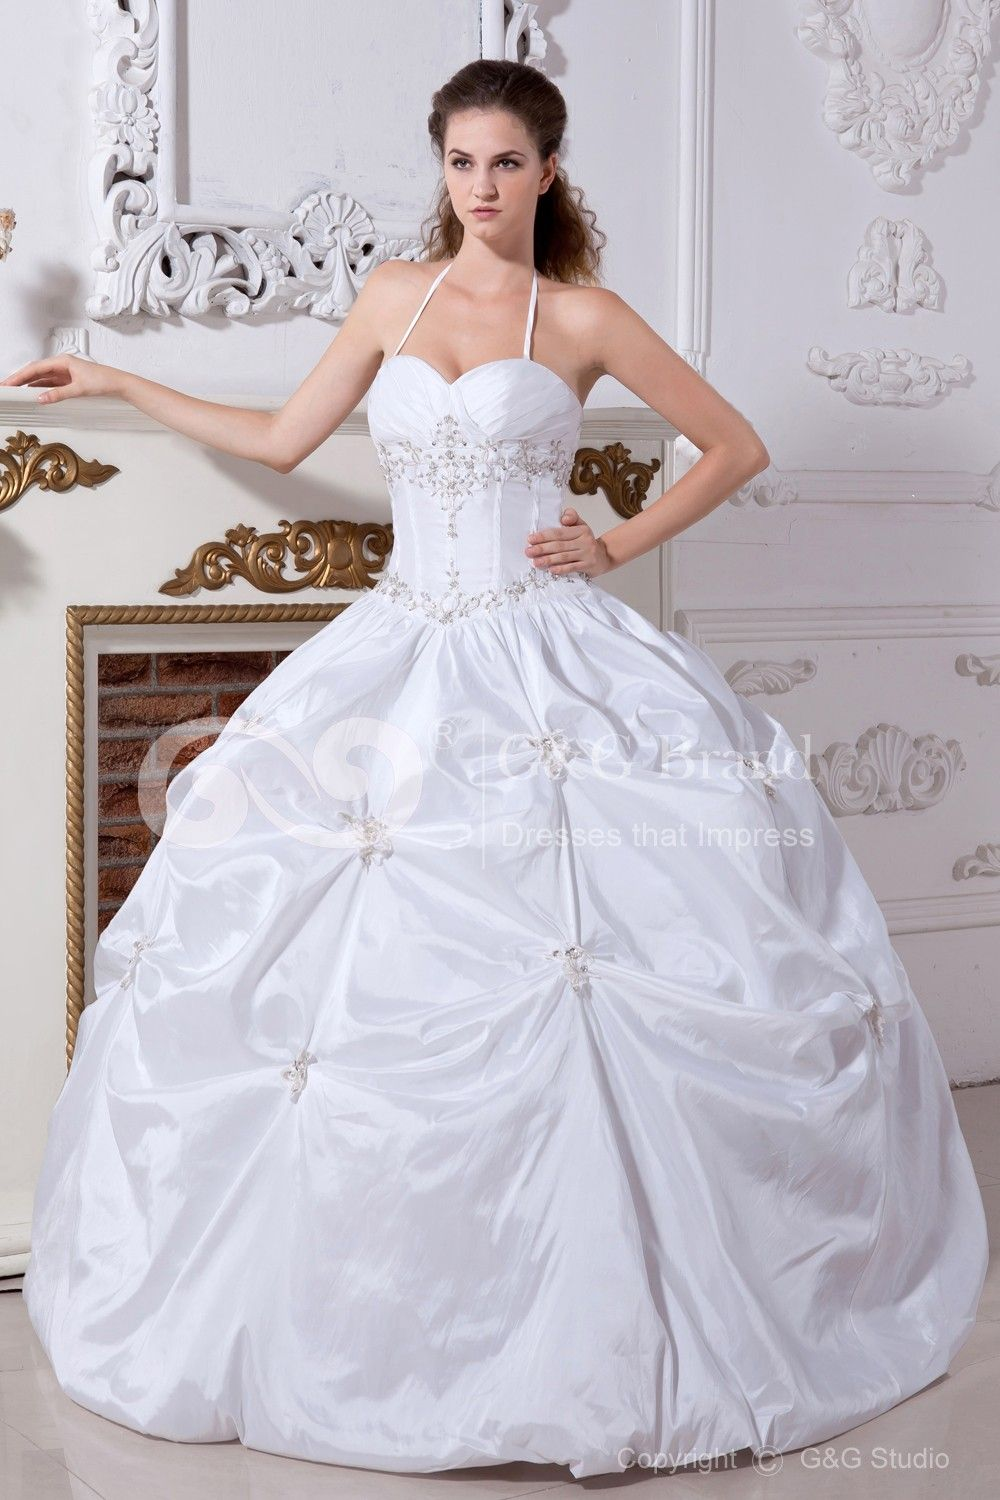 White wedding dresses for indian brides for sale